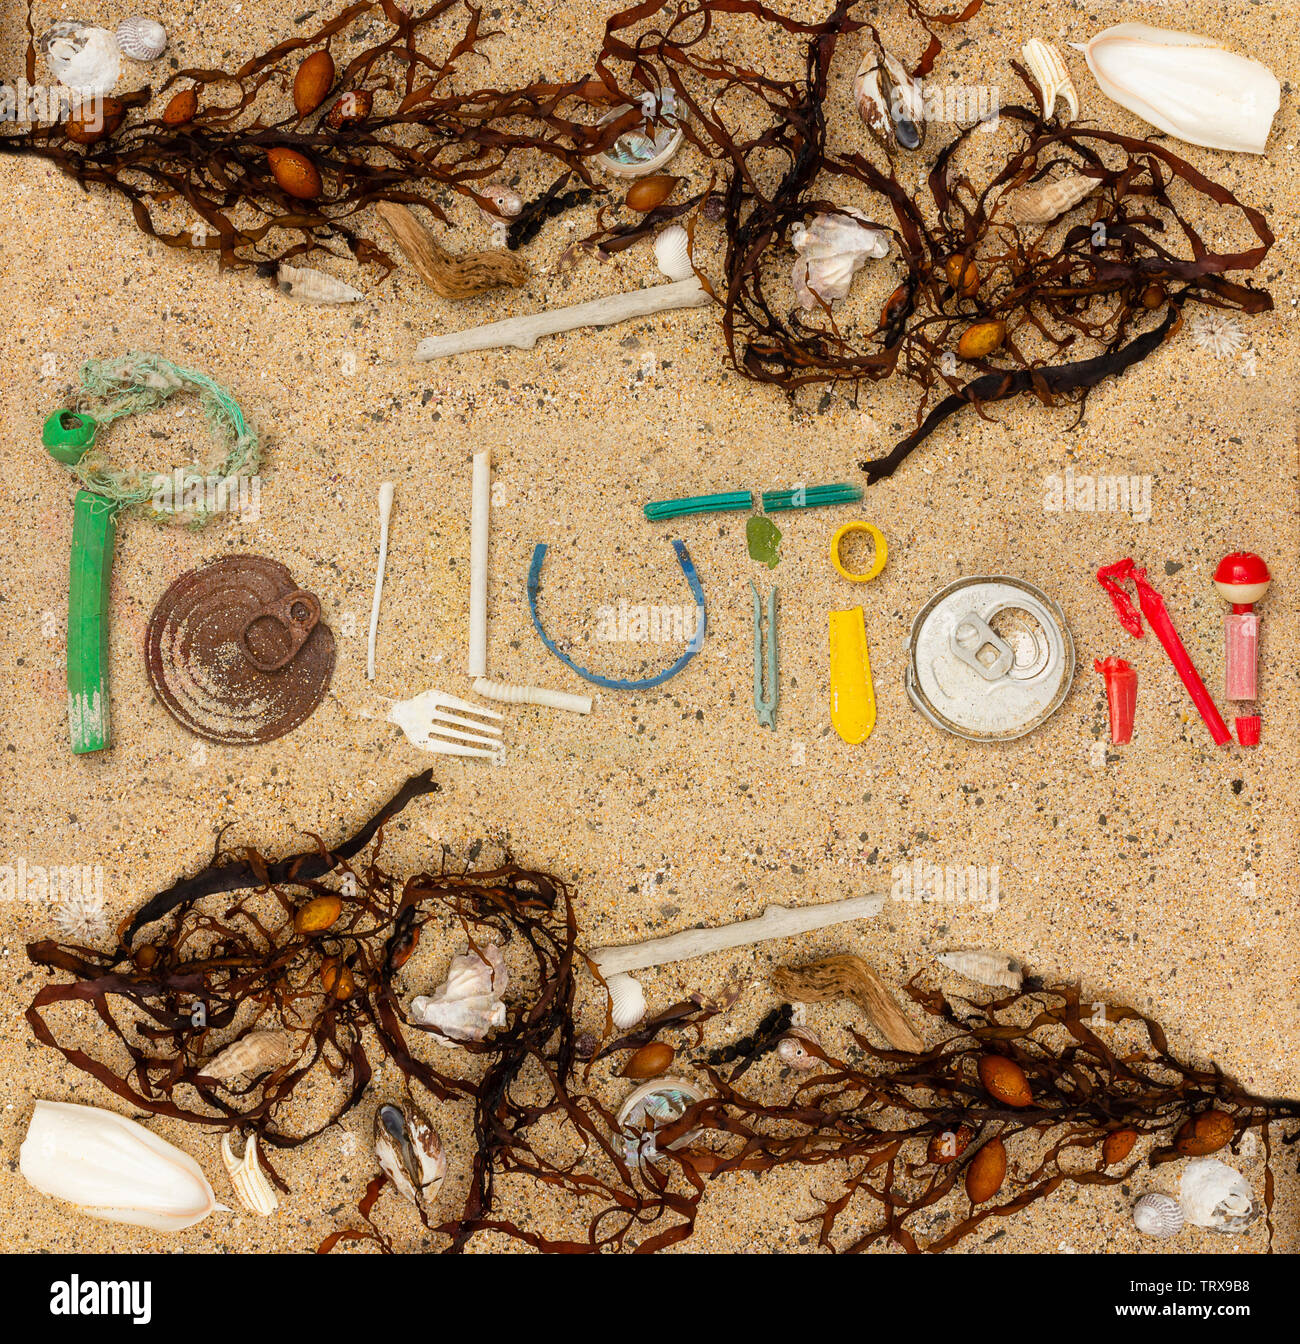 Pollution text made from real single use plastic rubbish found on beach with shells, seaweed and natural beach debris - Stock Image